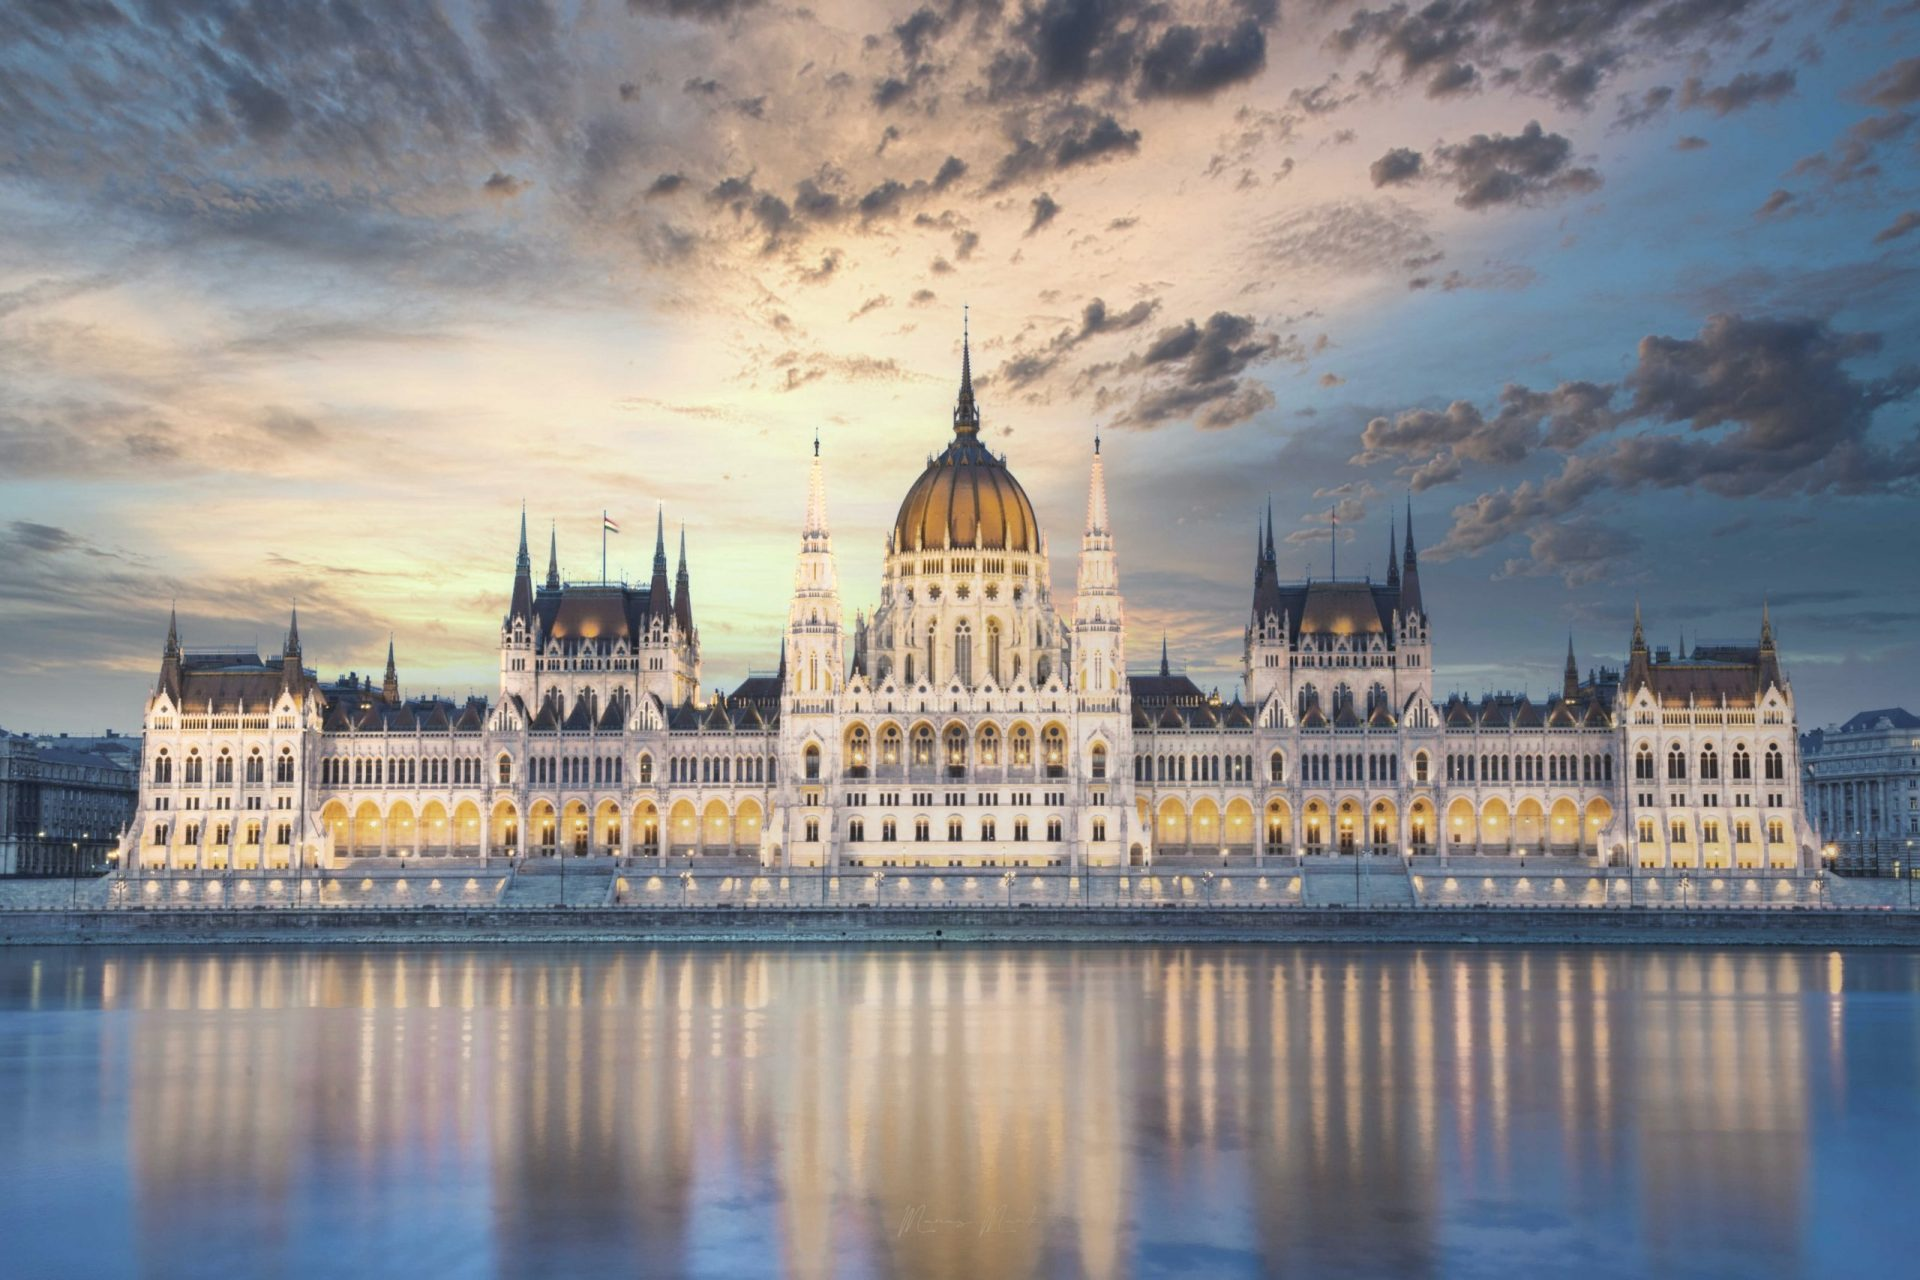 Best Countries for Digital Nomads in Europe - House of Parliament in Budapest, Hungary